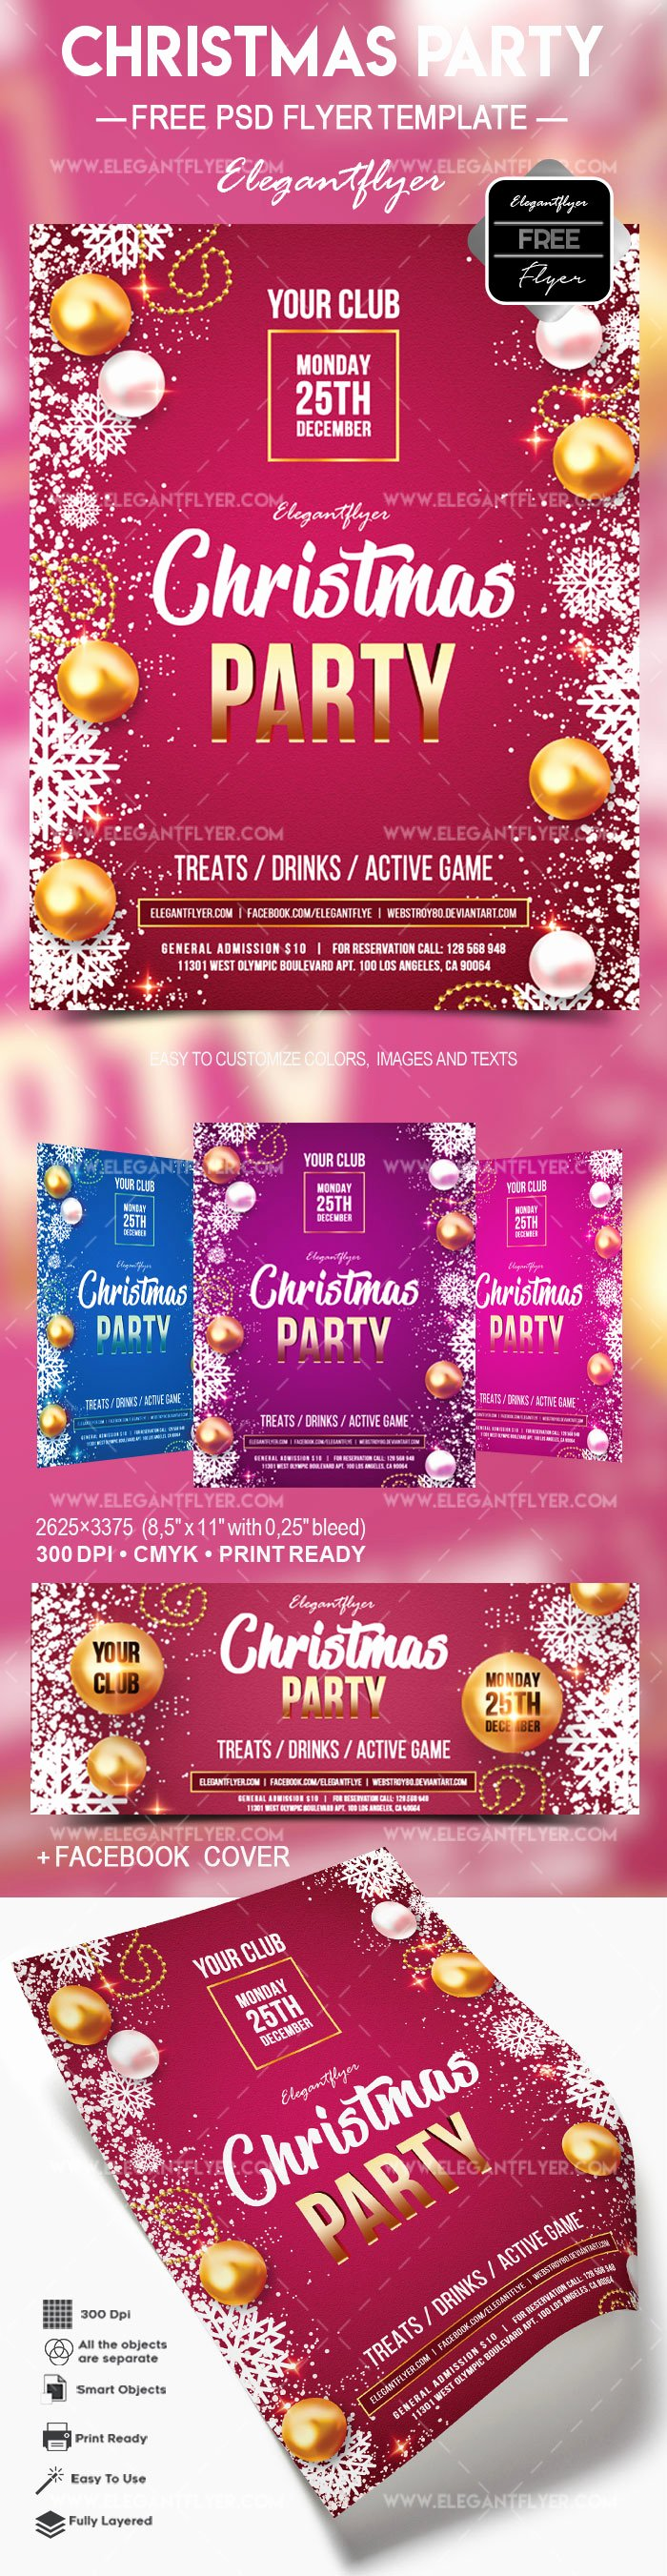 free christmas party flyer psd template cover